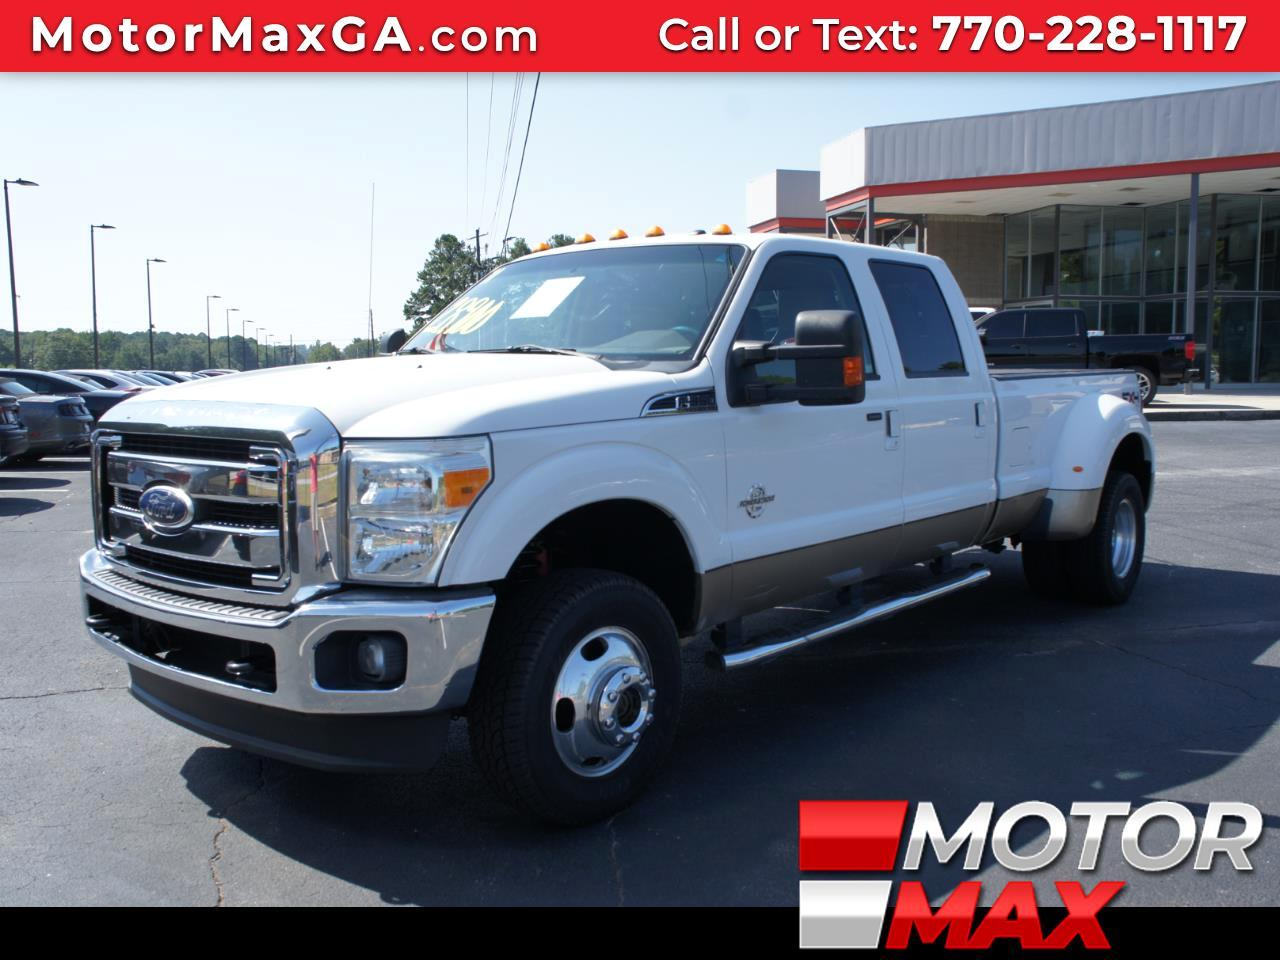 2011 Ford F-350 SD Lariat Crew Cab DRW 4WD Diesel Dually FX4 OFF ROAD